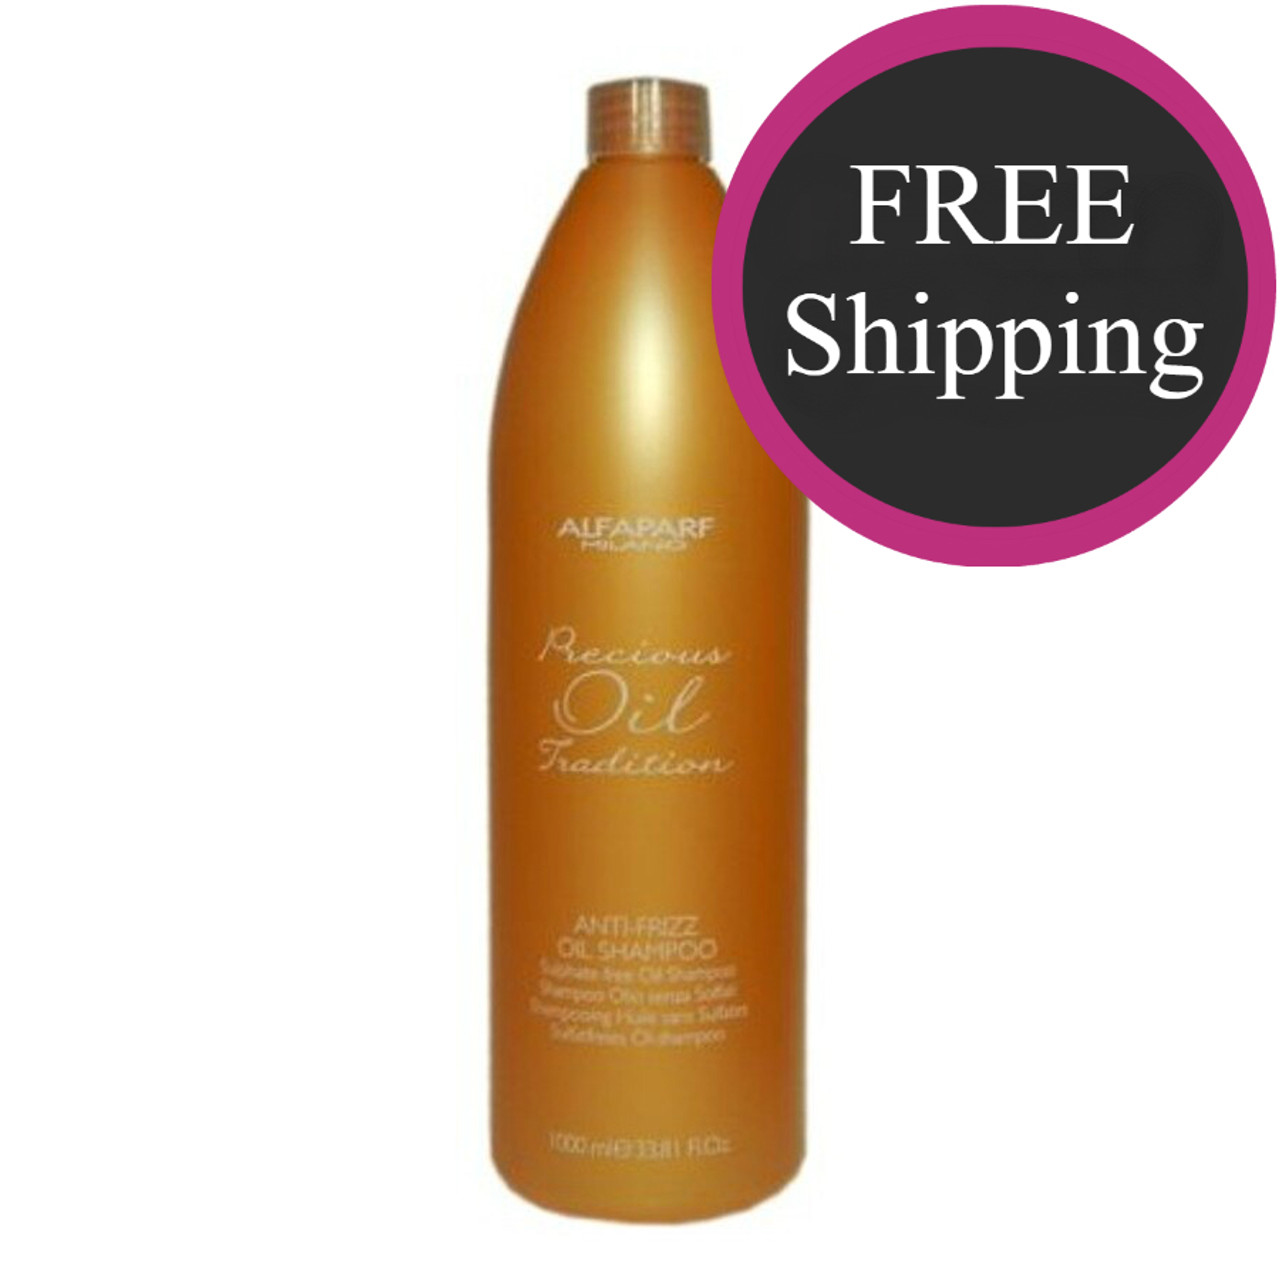 Alfaparf Anti-Frizz Oil Shampoo 1L: Free Shipping